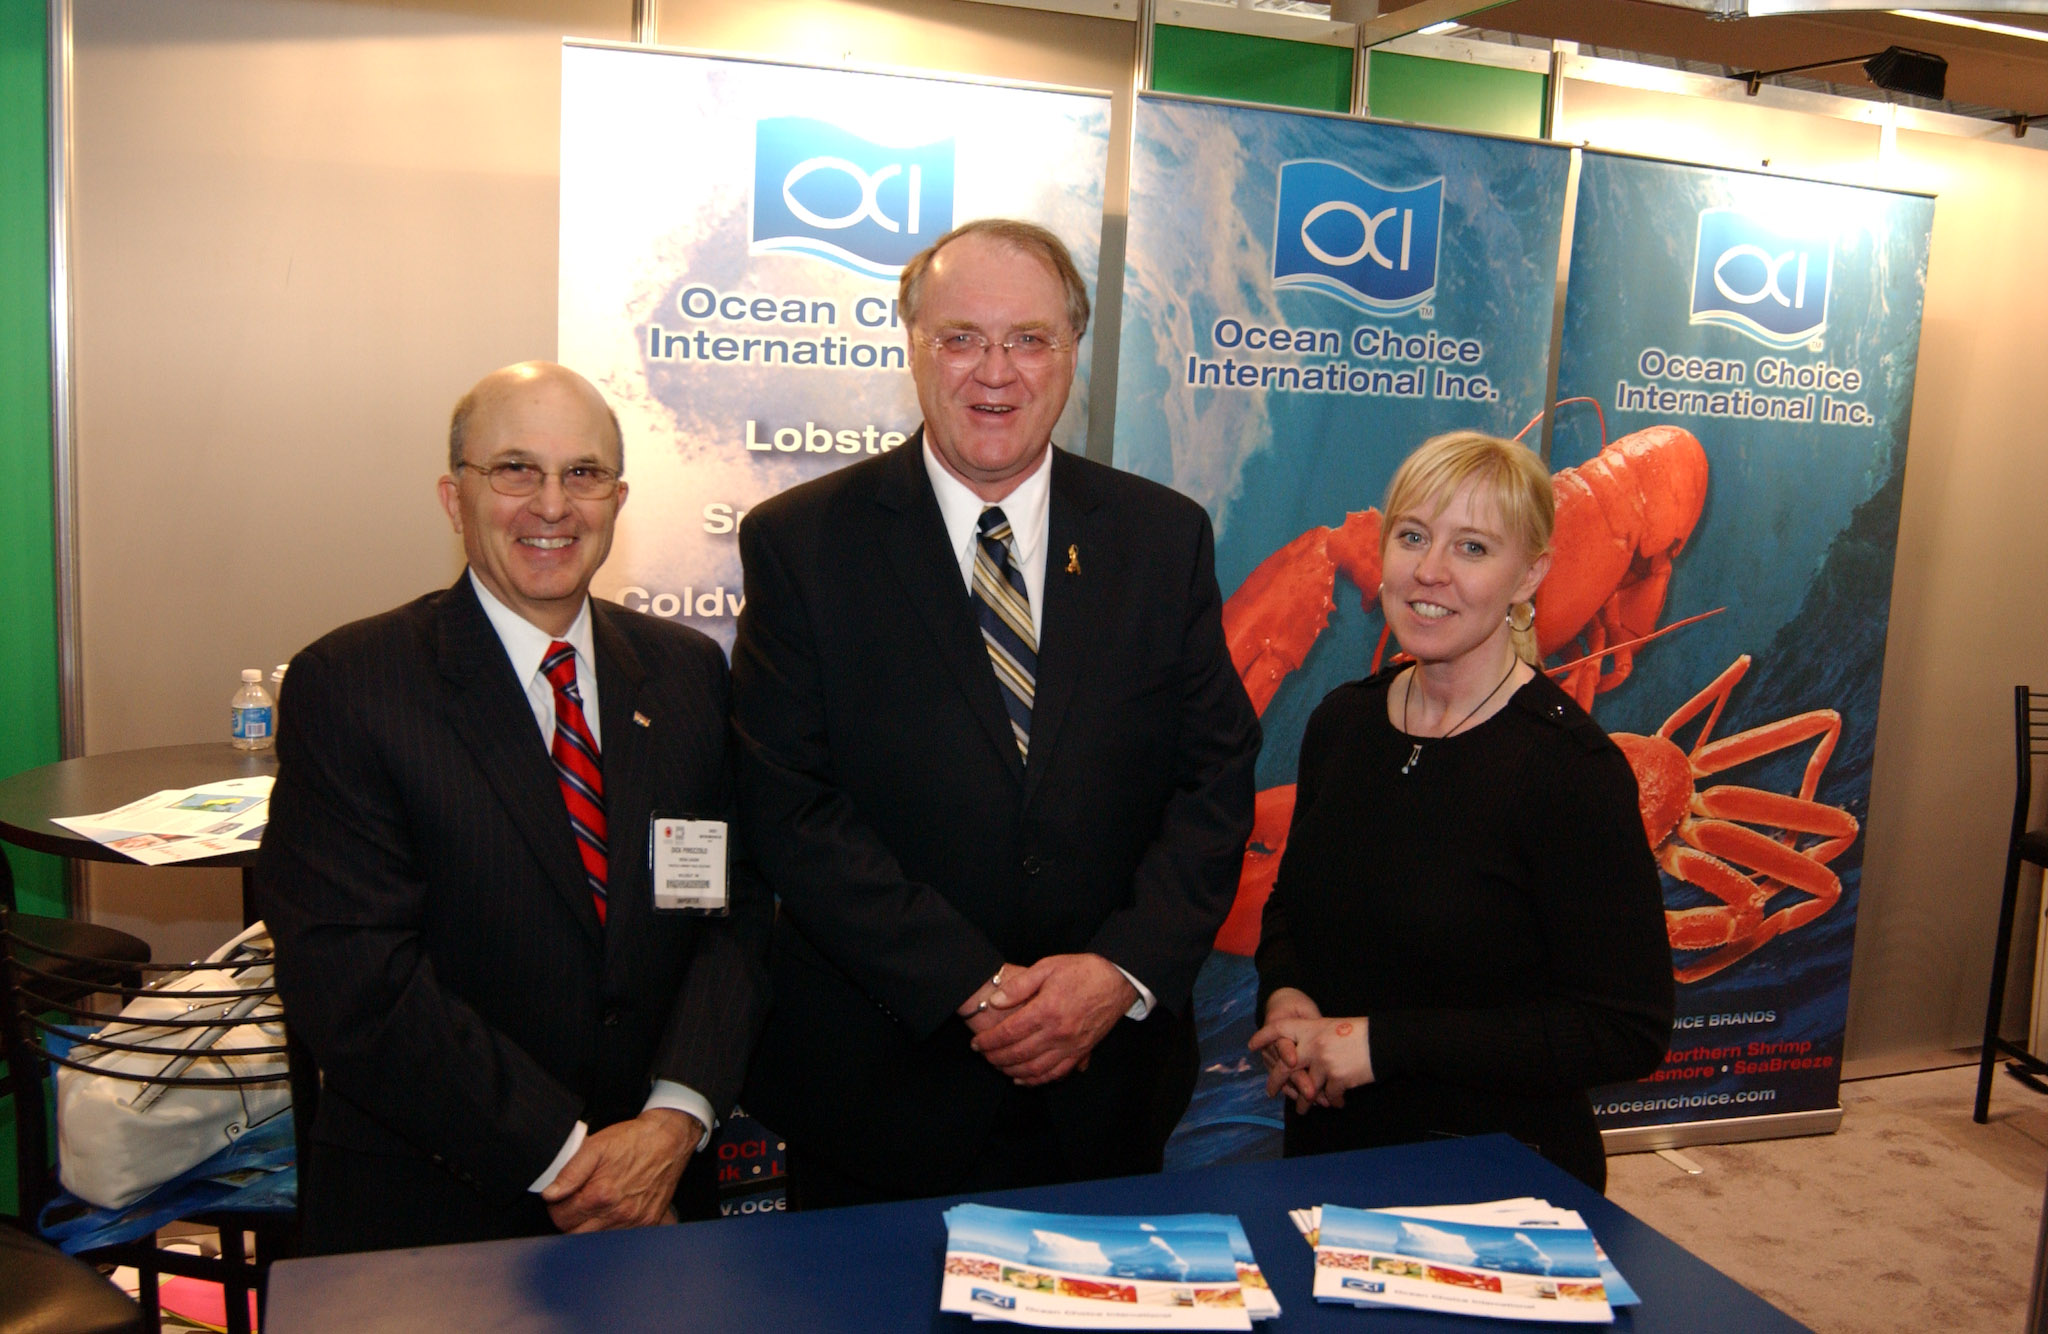 Dick Pirozzolo with ACOA at Boston Seafood Show